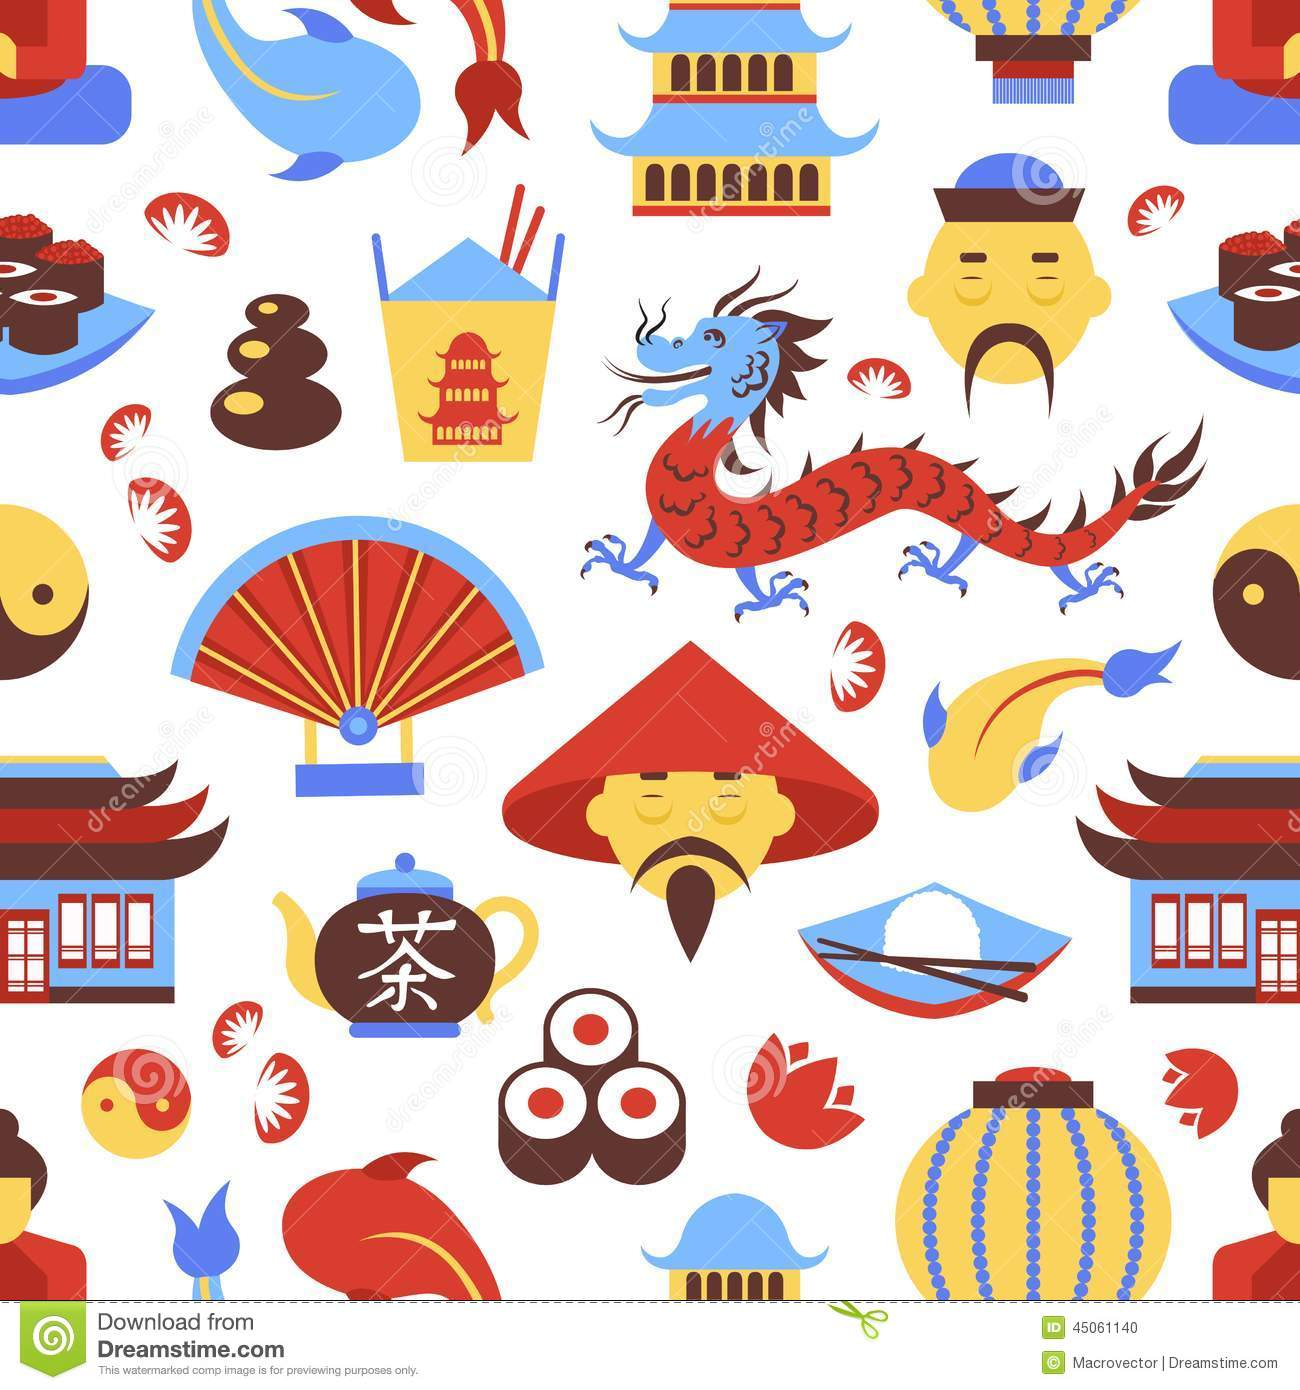 application of chinese folk art patterns in animation design 47,626 best invitation background designs free vector download for commercial use in ai, eps, cdr, svg vector illustration graphic art design formatinvitation, invitation template, invitation design, invitation card, invitation card design, party invitation, invitation border, business invitation background, wedding invitation, business invitation, elegant.